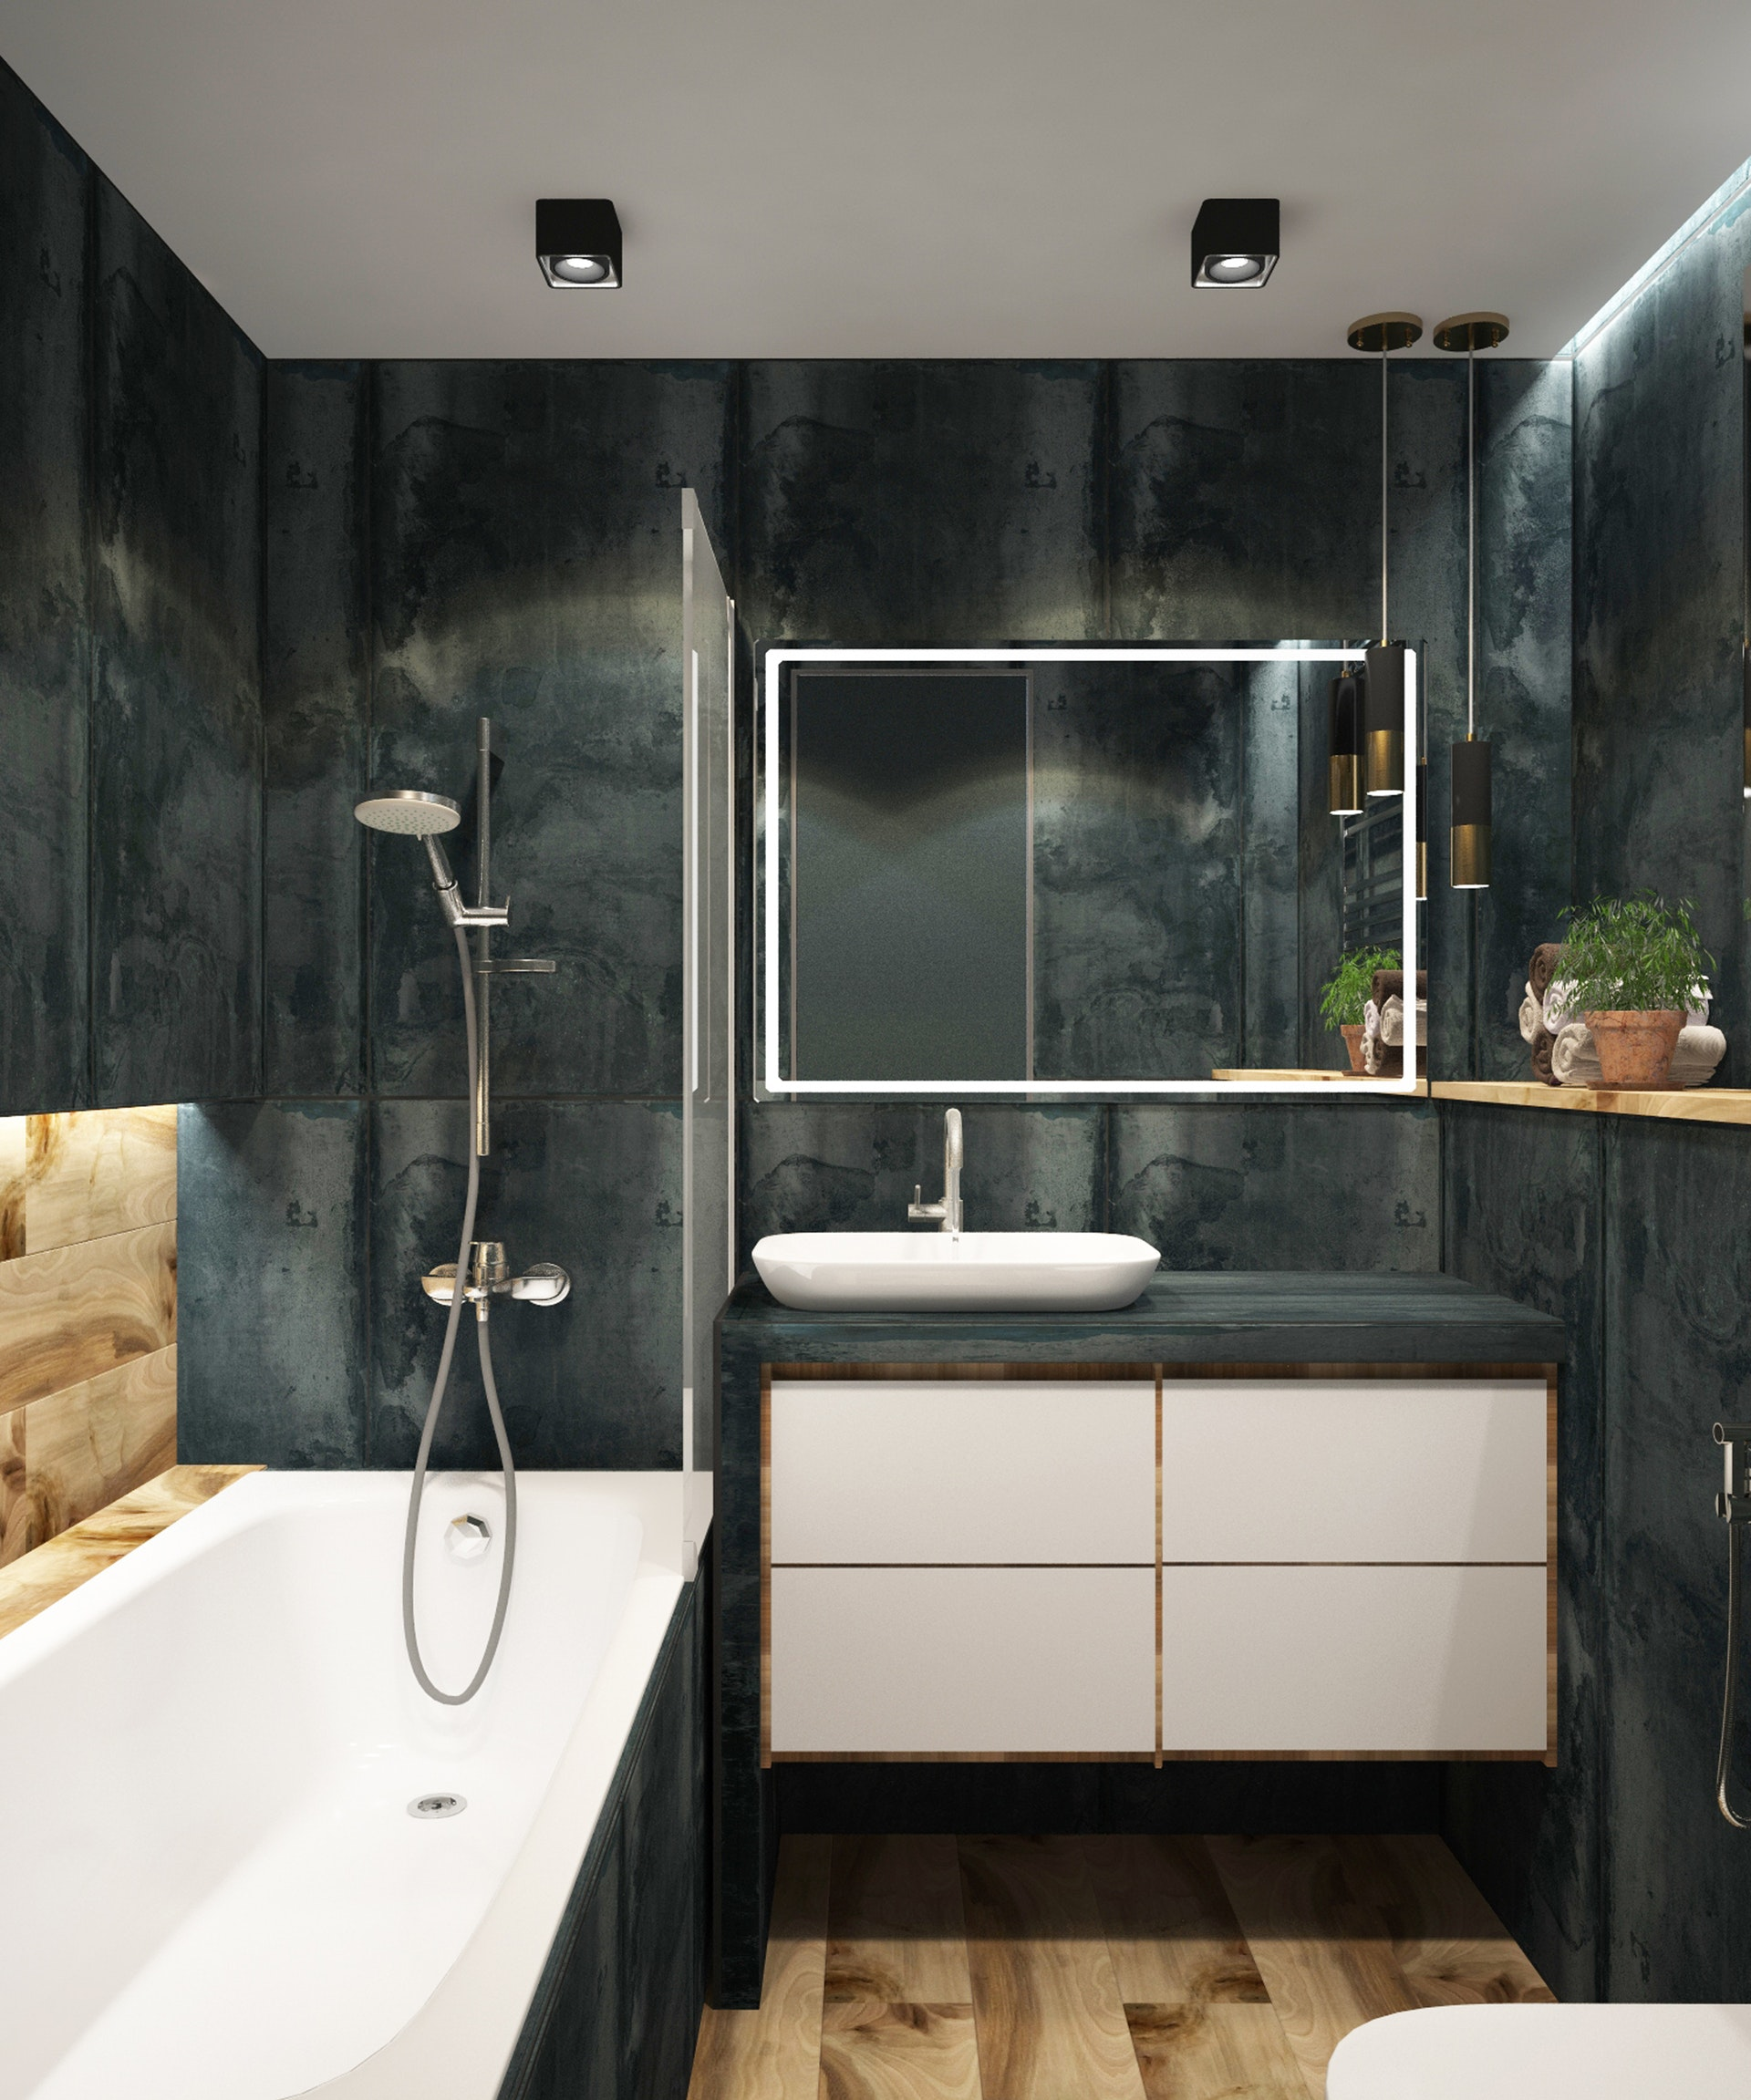 15 Bathroom Design Ideas And Trends (2020)